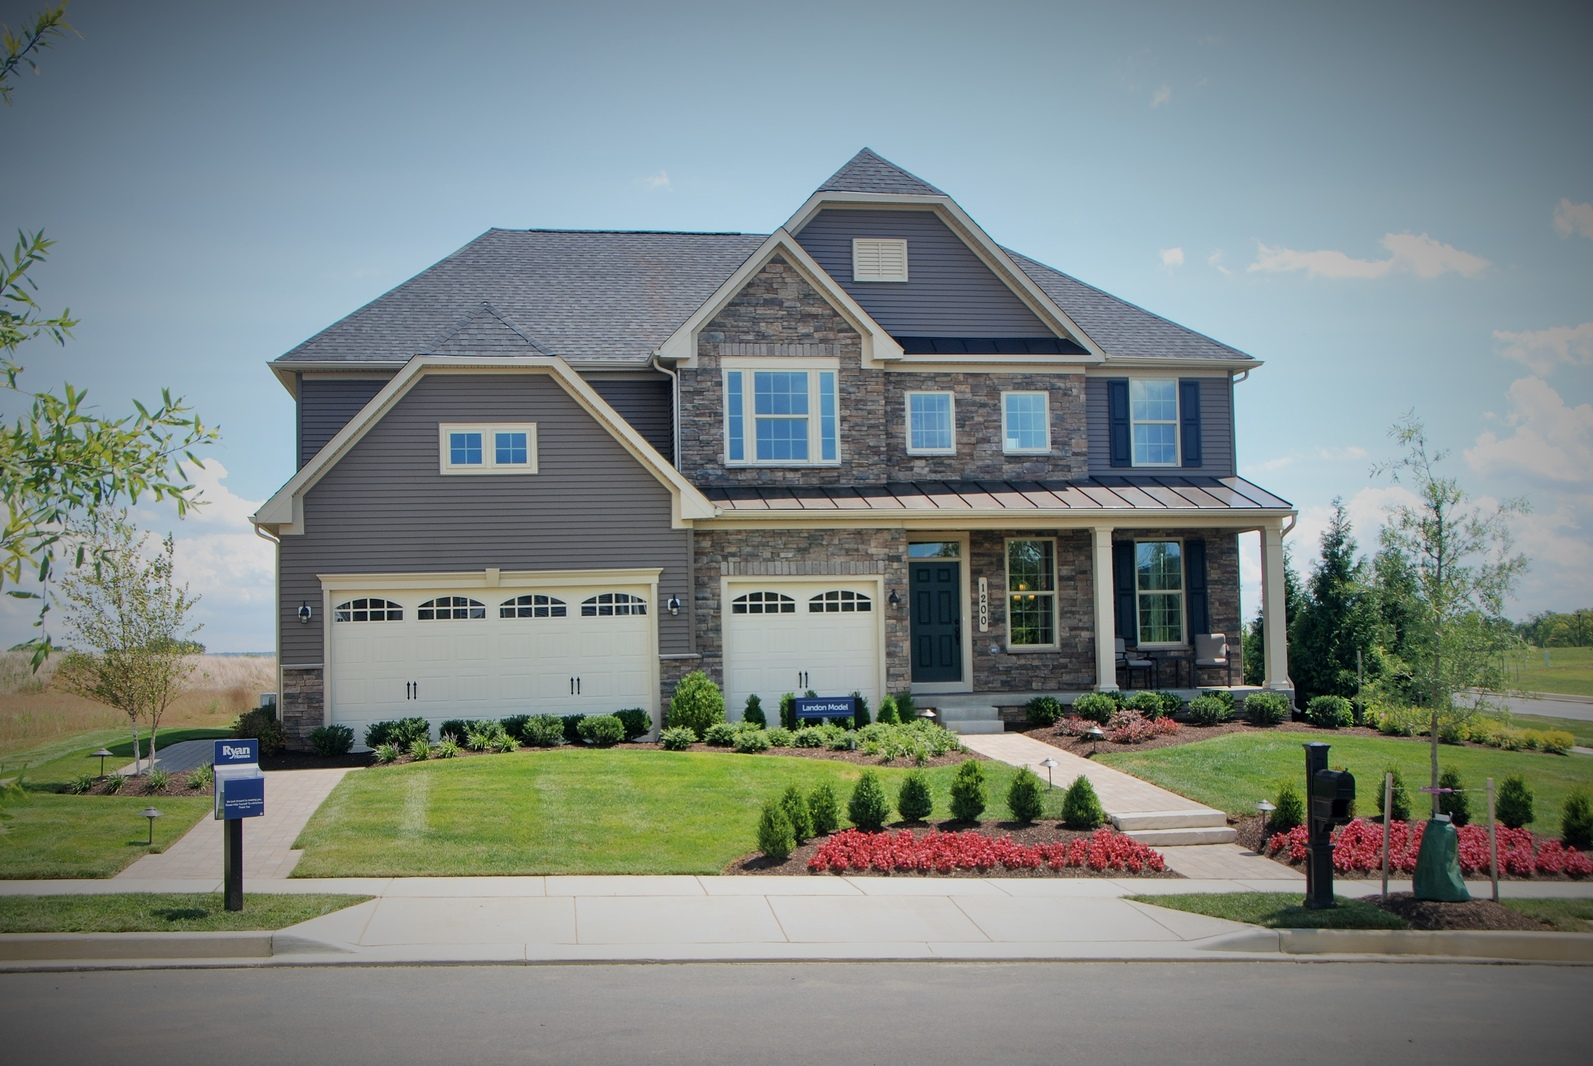 Ious Homesites And Floorplans With Included Or Optional 3 Car Garages Gives